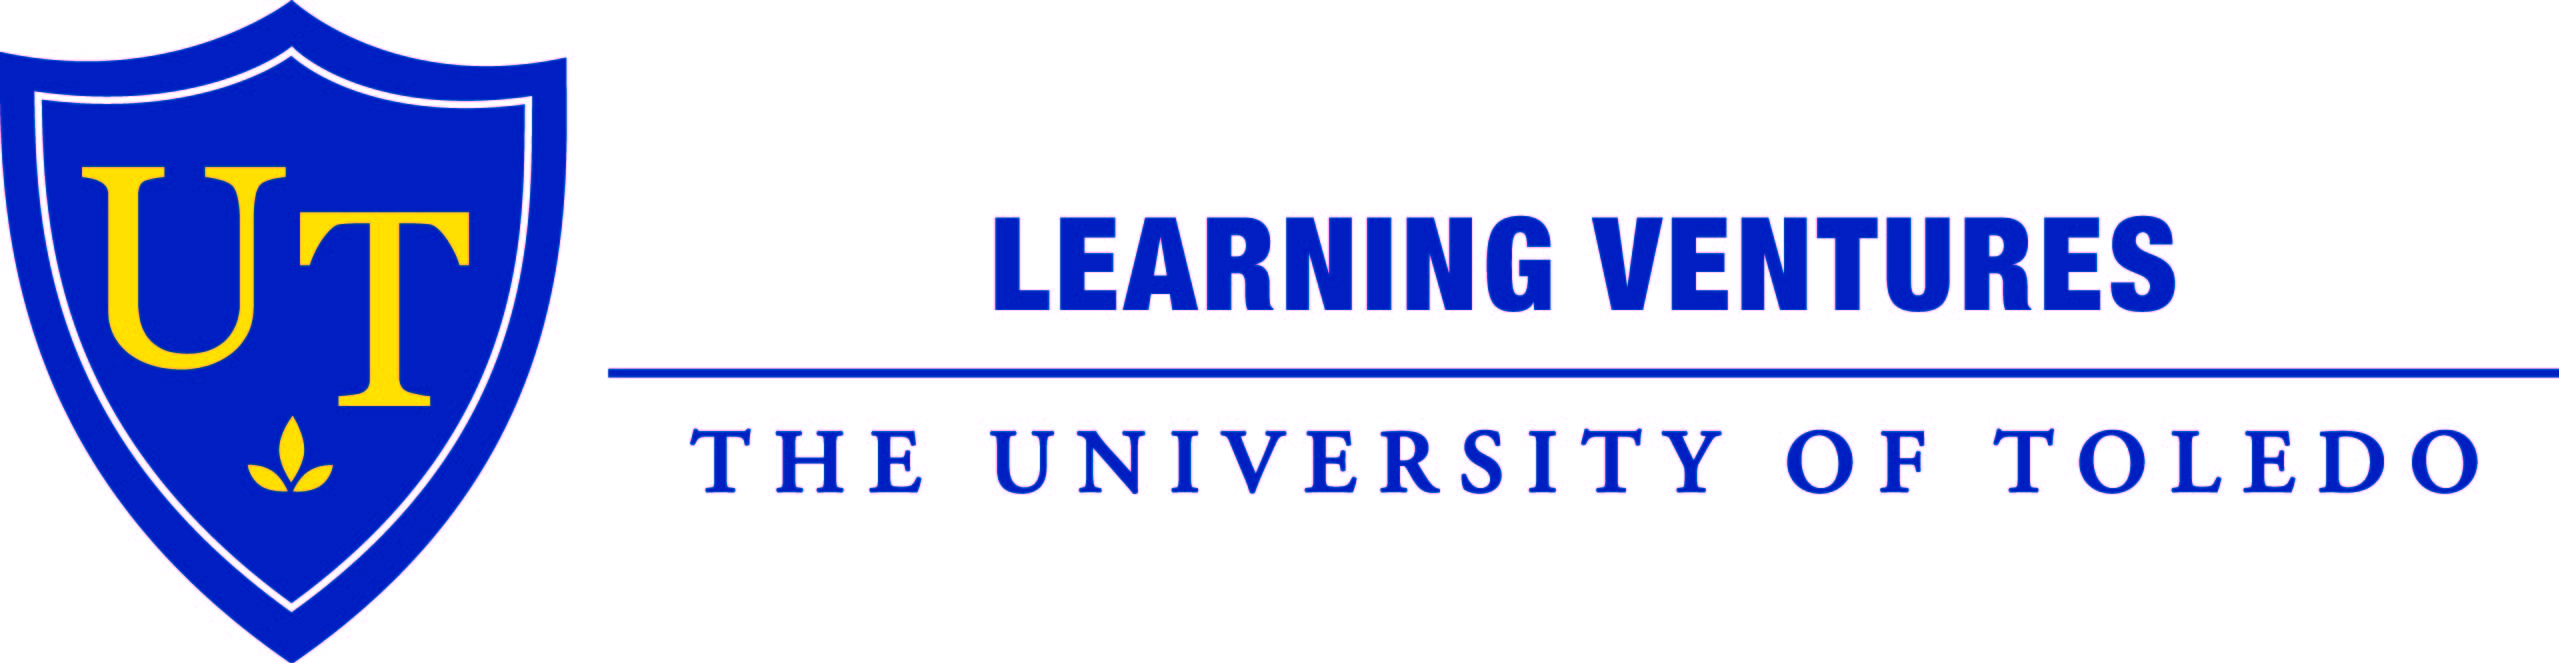 UT and Learning Ventures logo